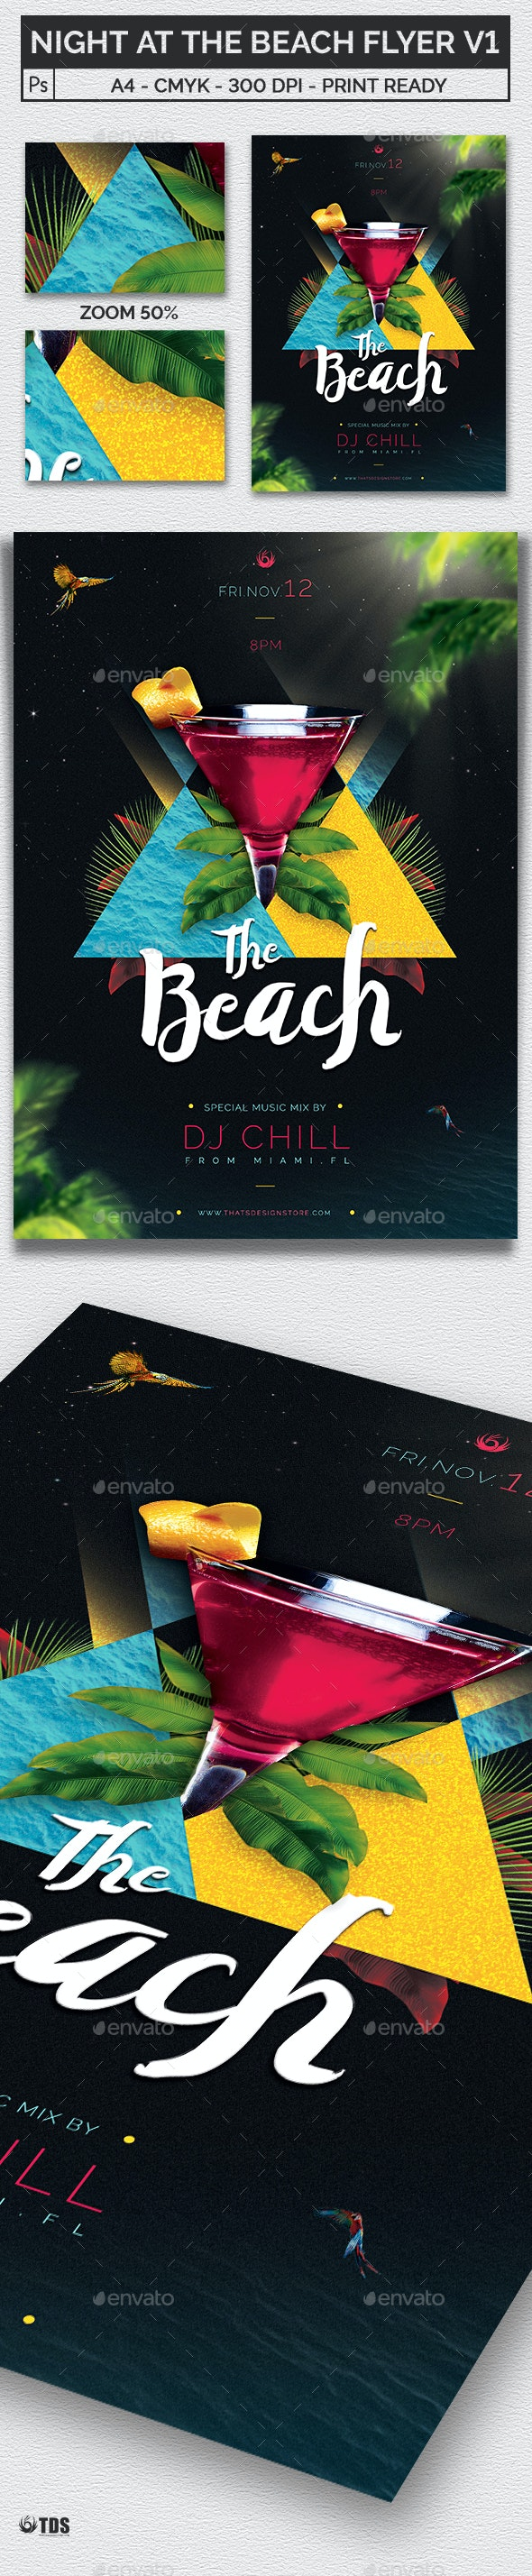 Night at The Beach Flyer Template V1 - Clubs & Parties Events